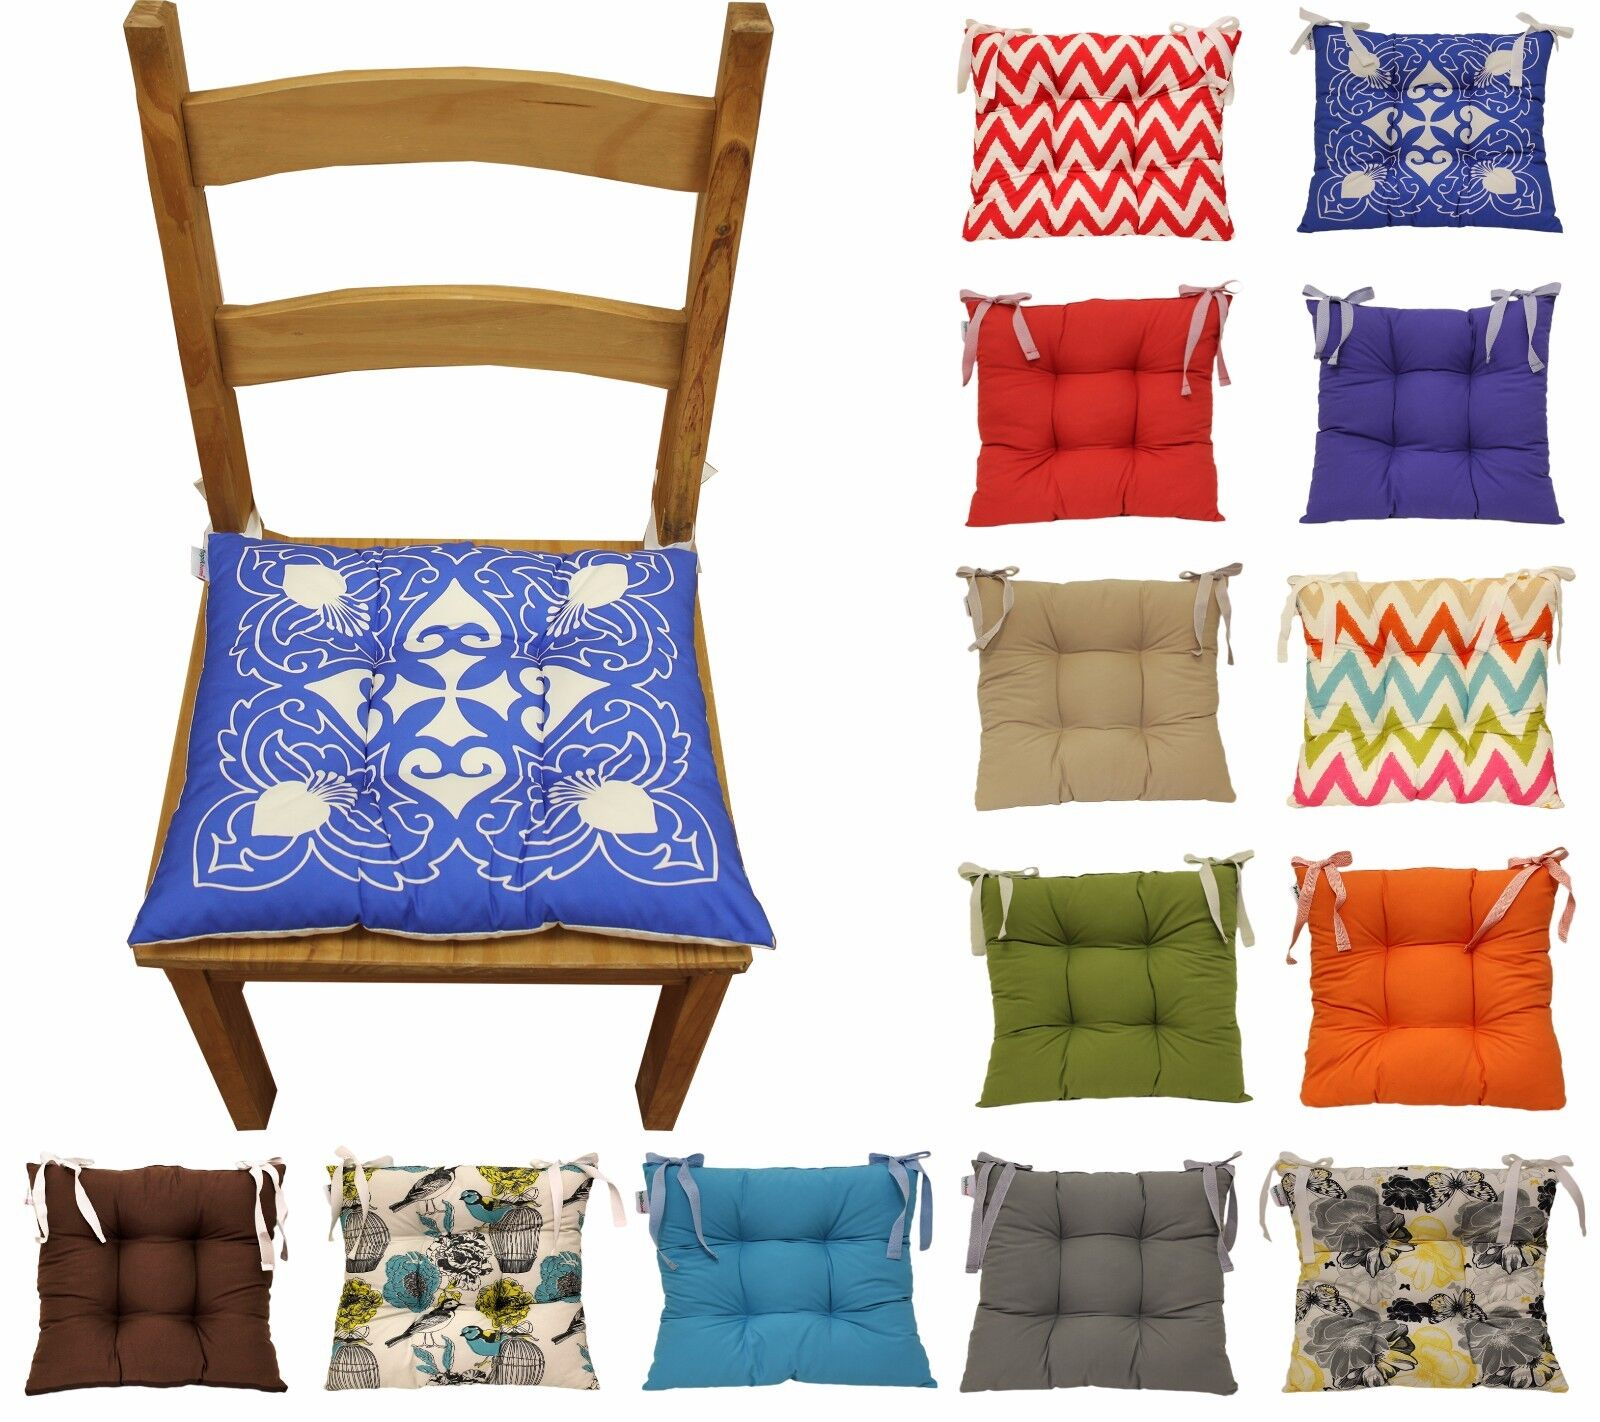 Colourful Seat Pad Dining Room Garden Kitchen Chair Cushions Tie On Many Colours 1 Of 12FREE Shipping